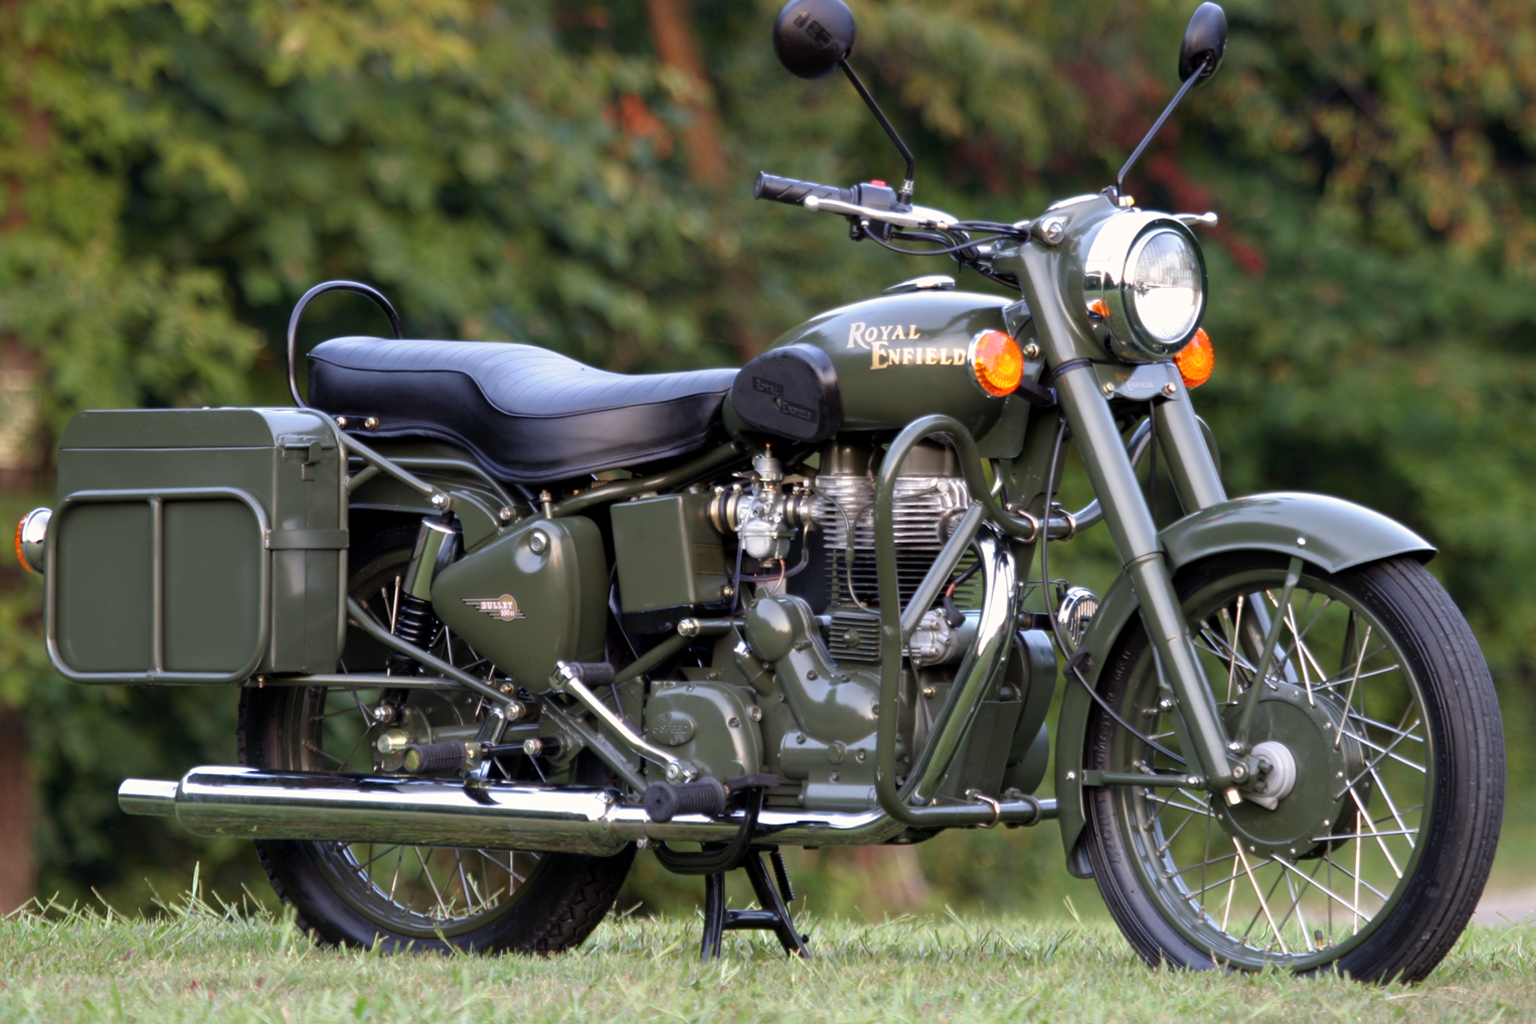 new motorcycle royal enfield military 500. Black Bedroom Furniture Sets. Home Design Ideas